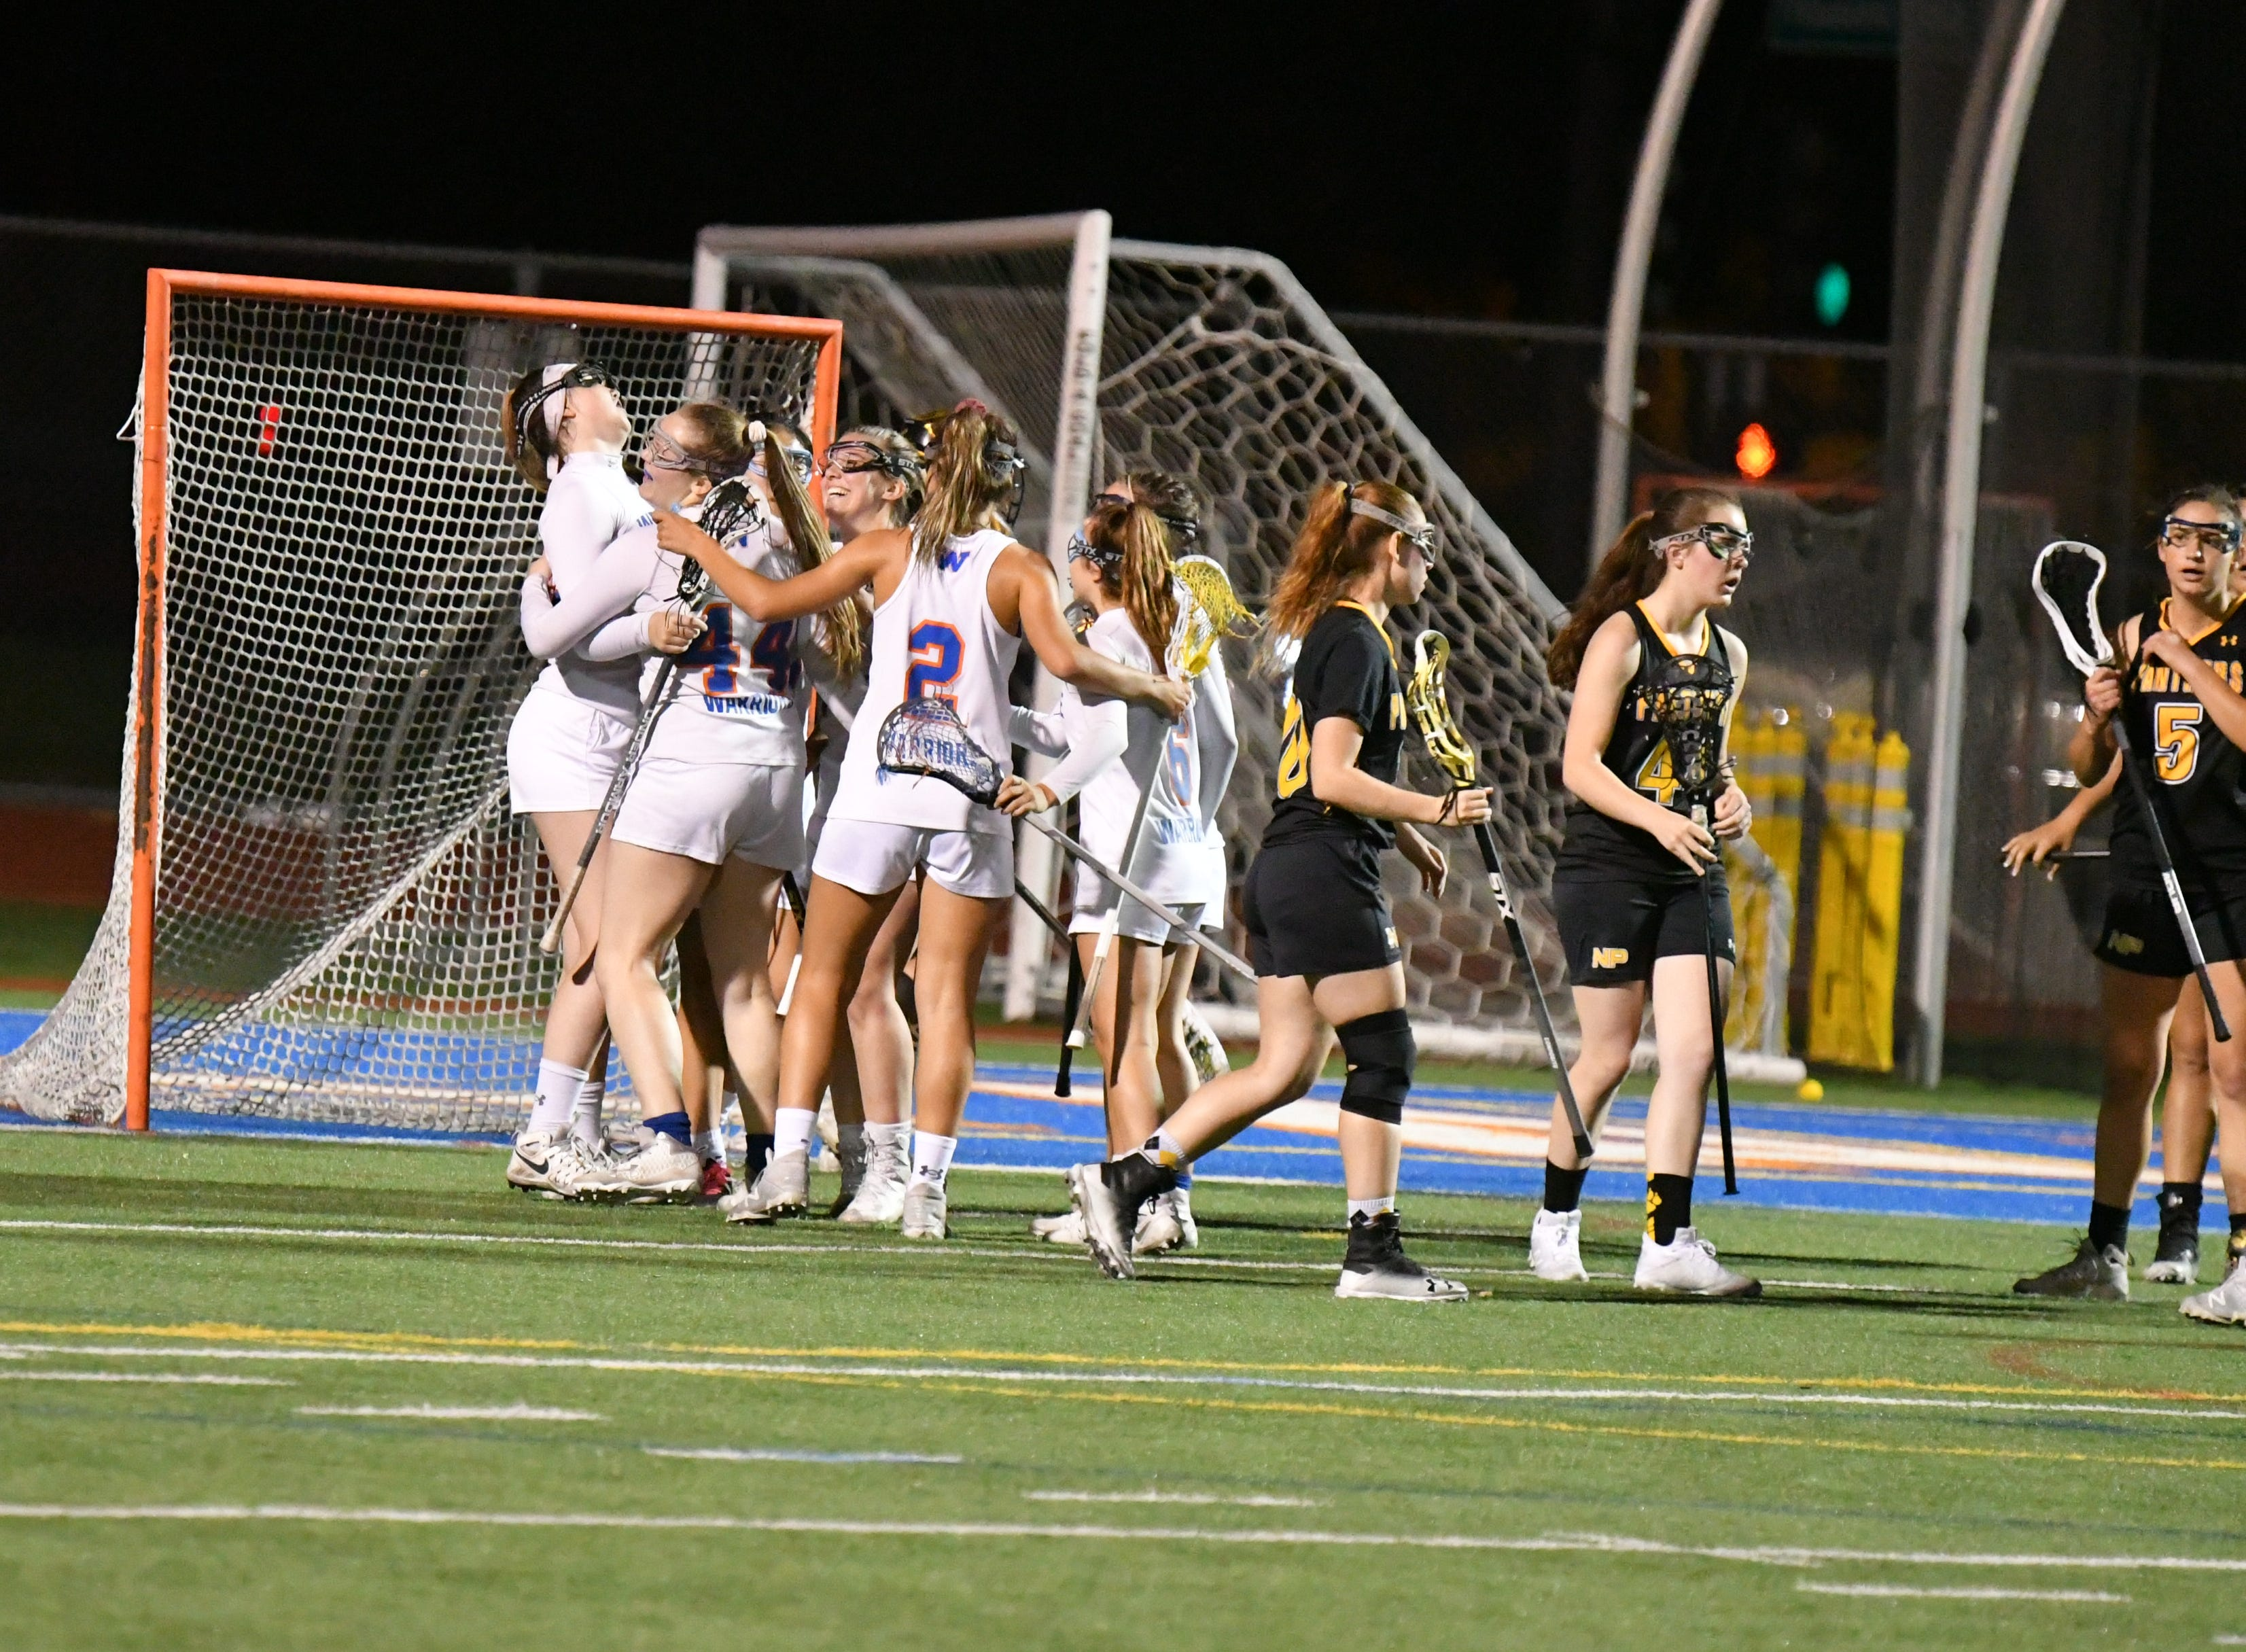 Westlake High girls lacrosse players celebrate after scoring a goal against Newbury Park on Thursday in the U.S. Lacrosse-Southern Section Northern Division quarterfinals.